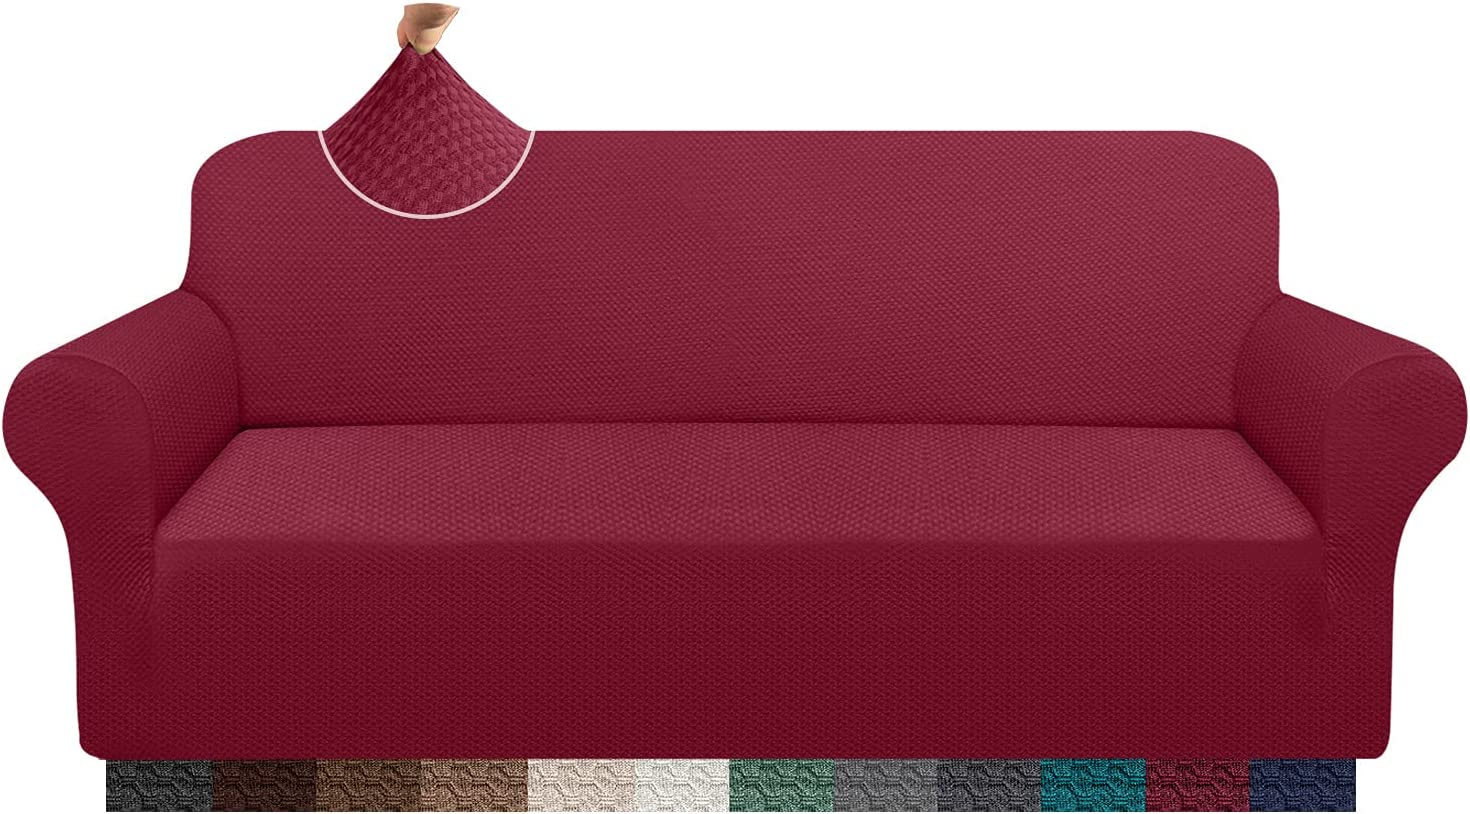 Cherrypark Super Thick Sofa Covers for 3 Cushion Couch Stretch Fit Couch Cover Unique Pattern Sofa Slipcover for Living Room Non-Slip Furniture Protector (Large, Wine Red)